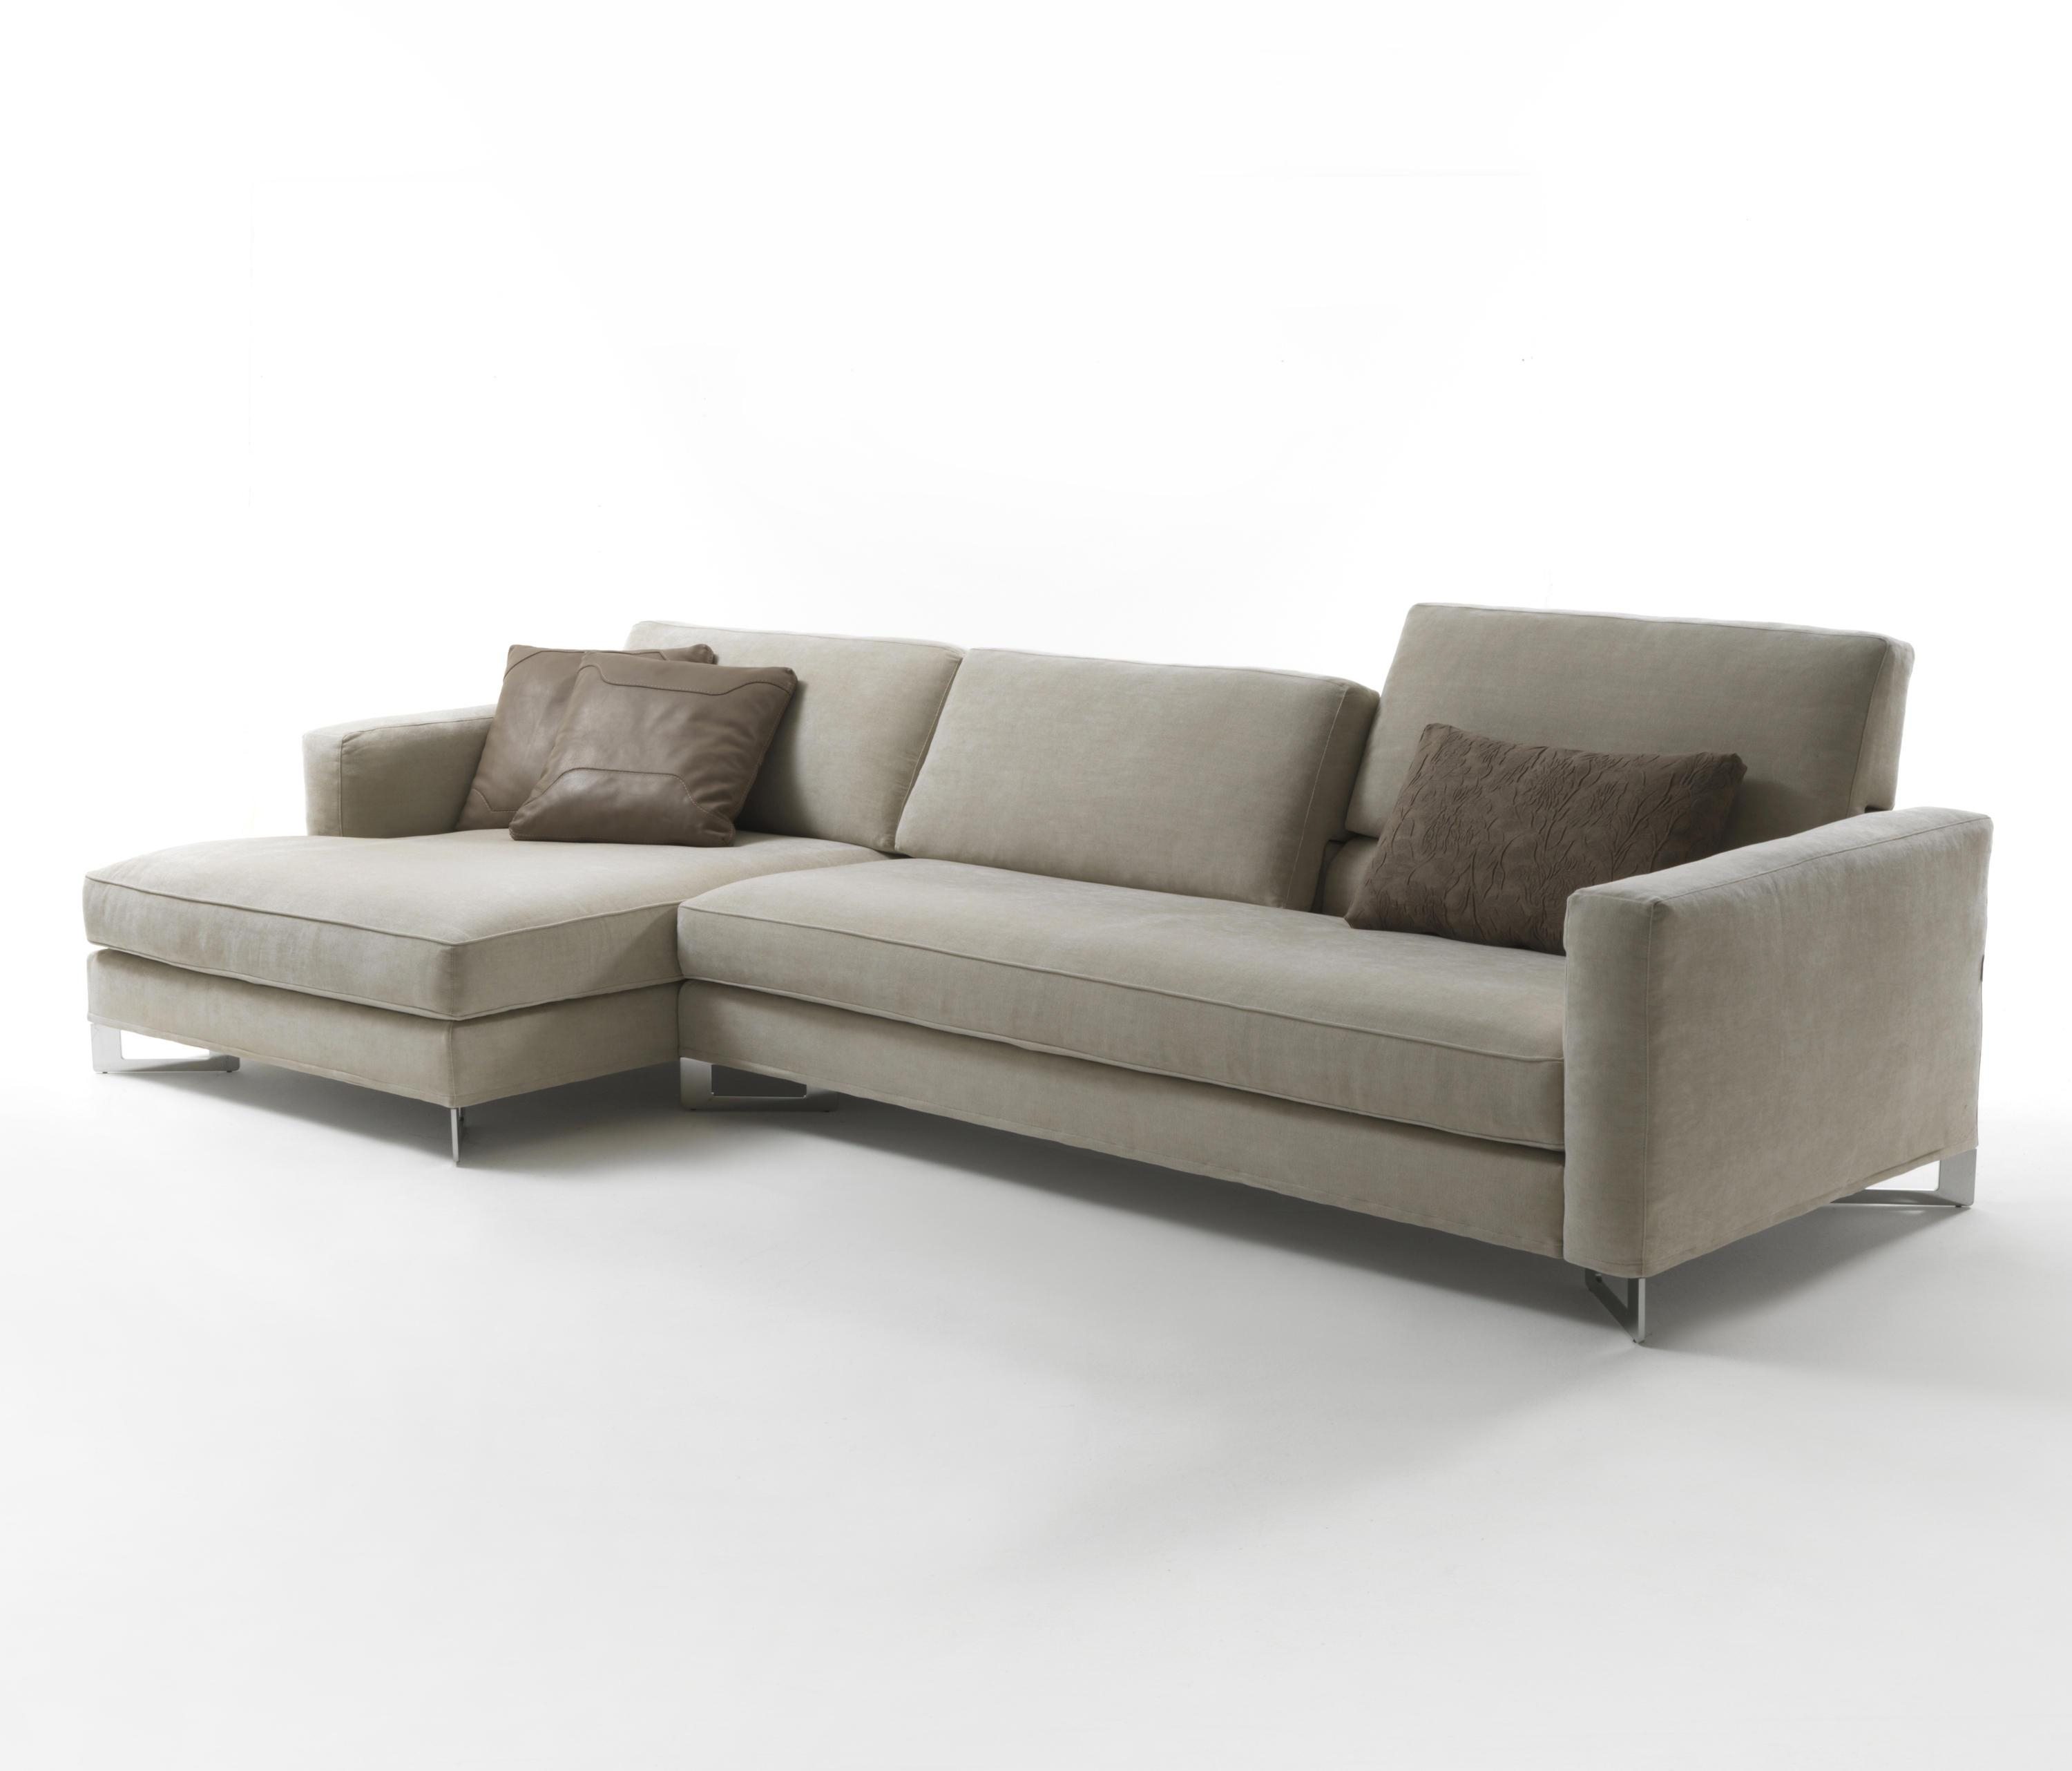 Davis Out – Sofas From Frigerio | Architonic In Davis Sofas (View 5 of 20)